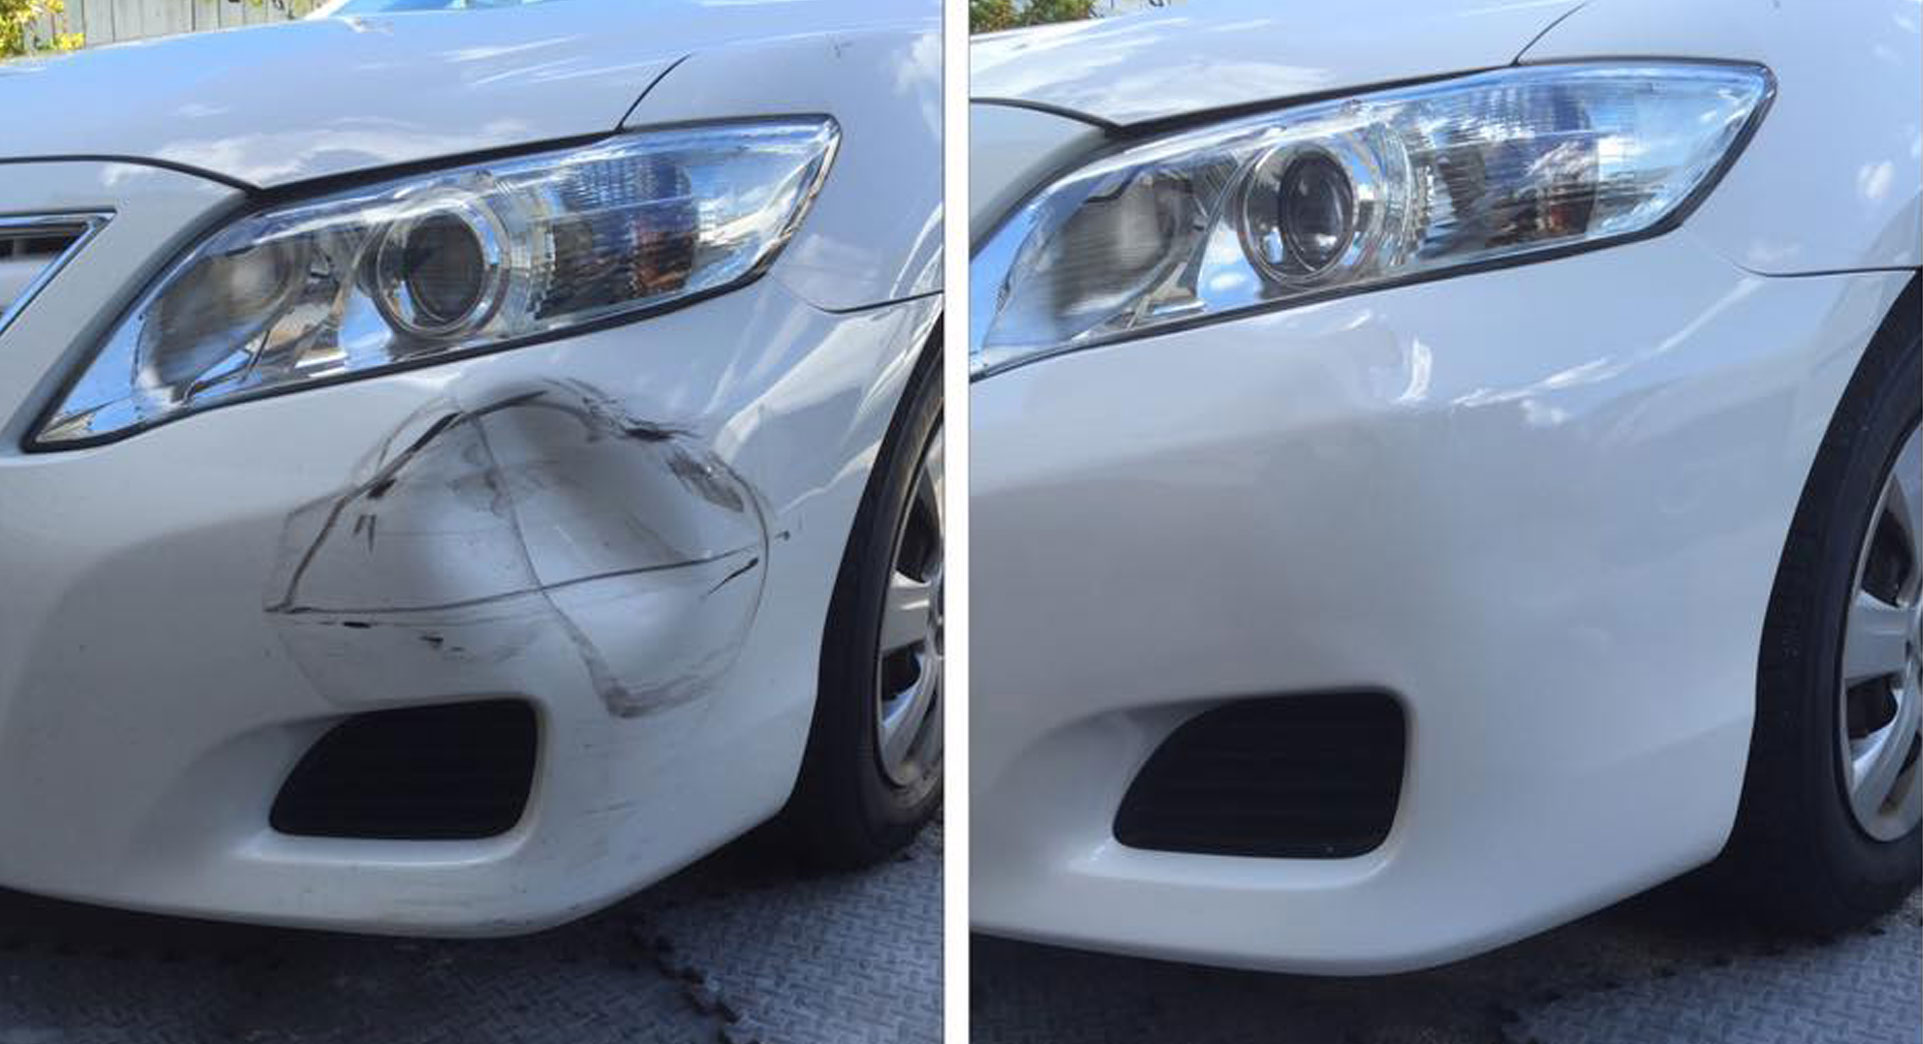 Mobile Paint & Dent Repairs - Brisbane - Before After Image 08